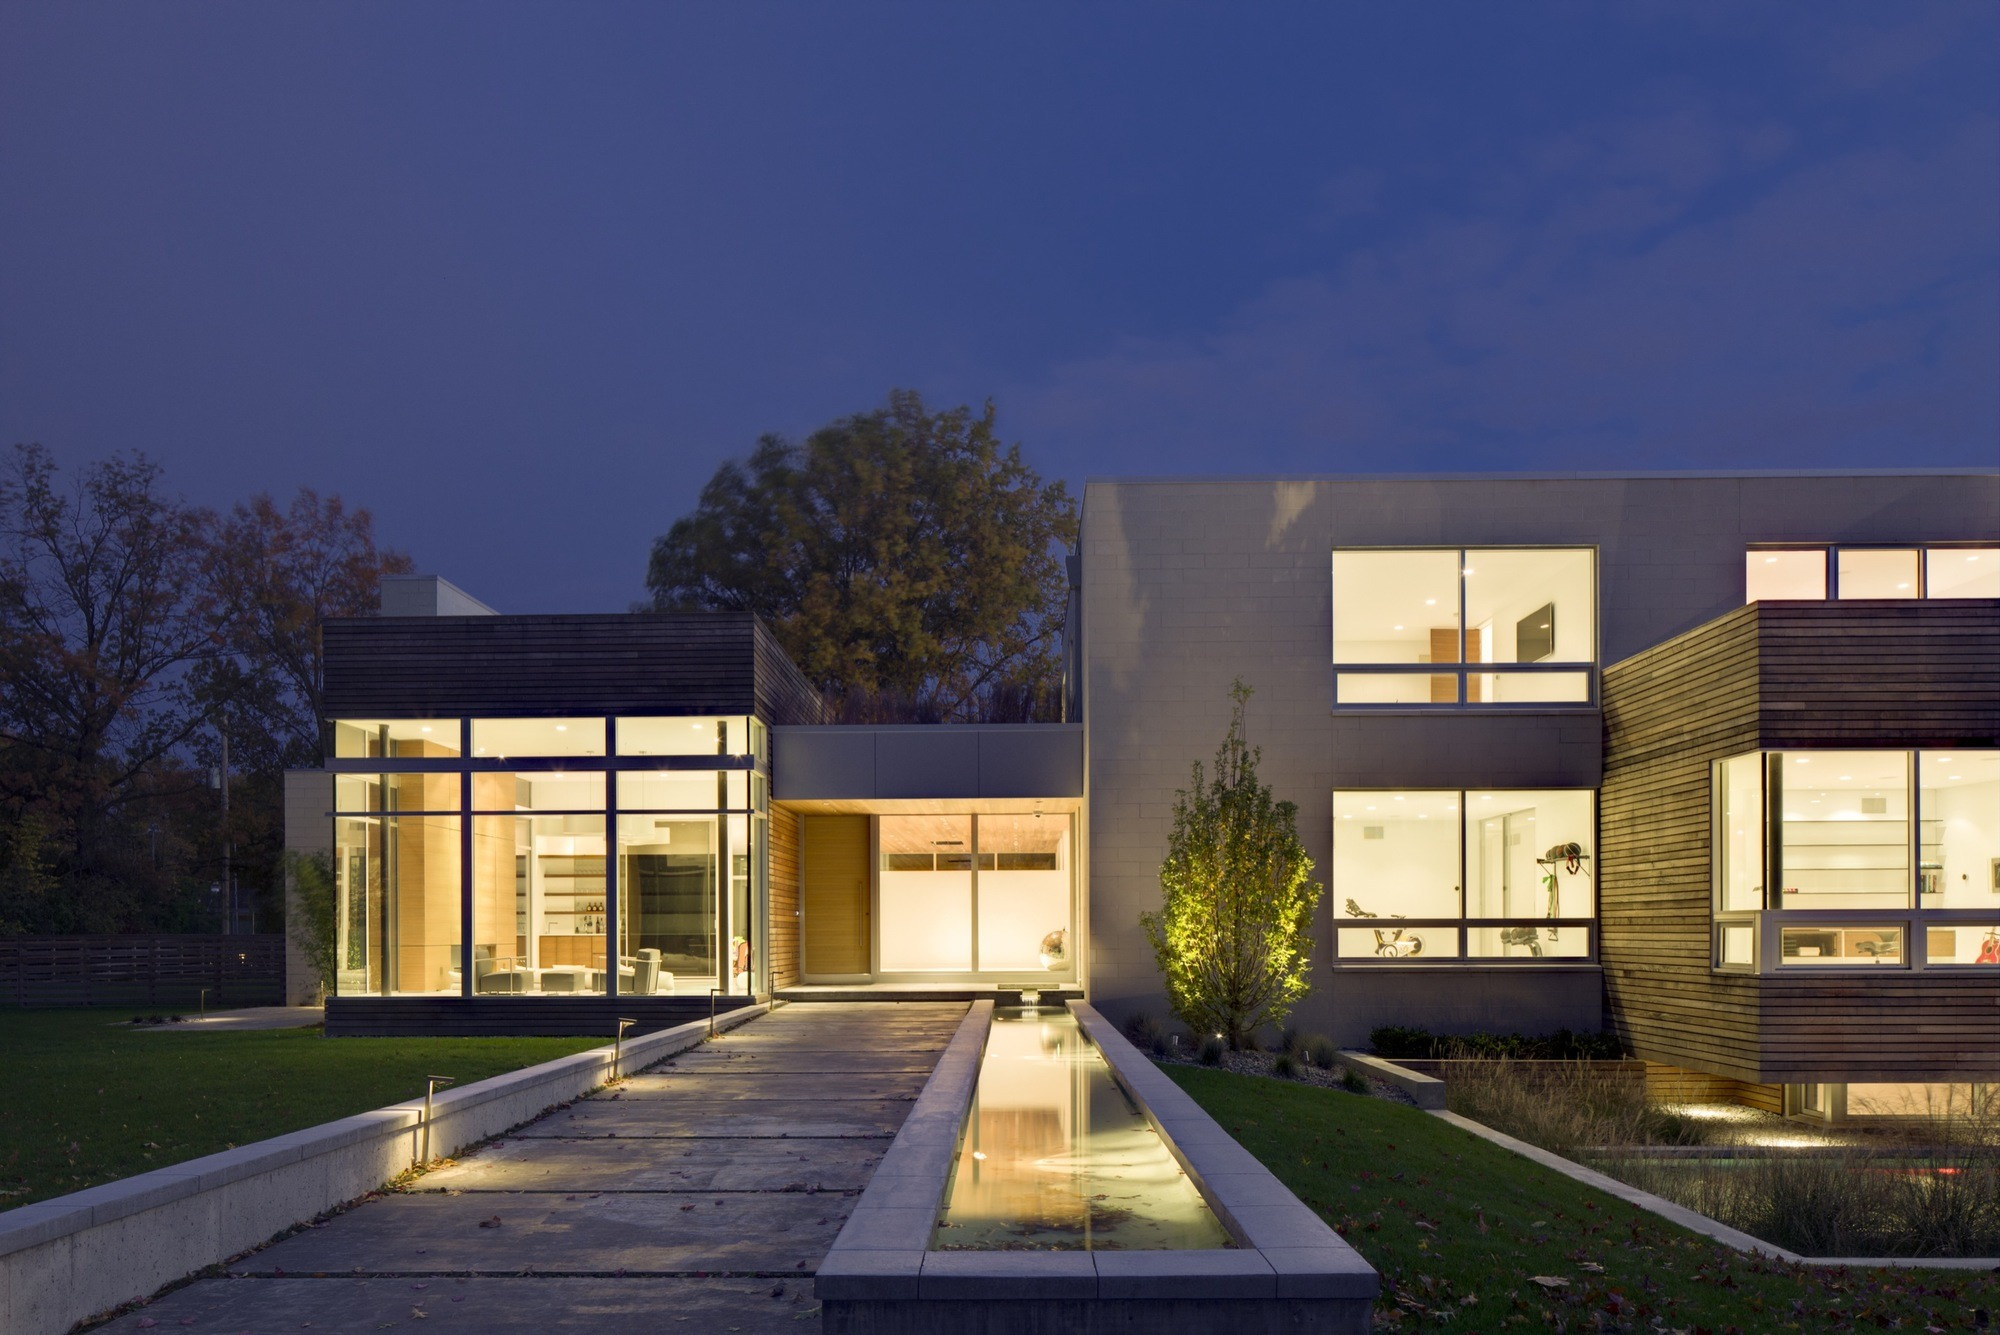 Shaker heights house by dimit architects karmatrendz Oh design